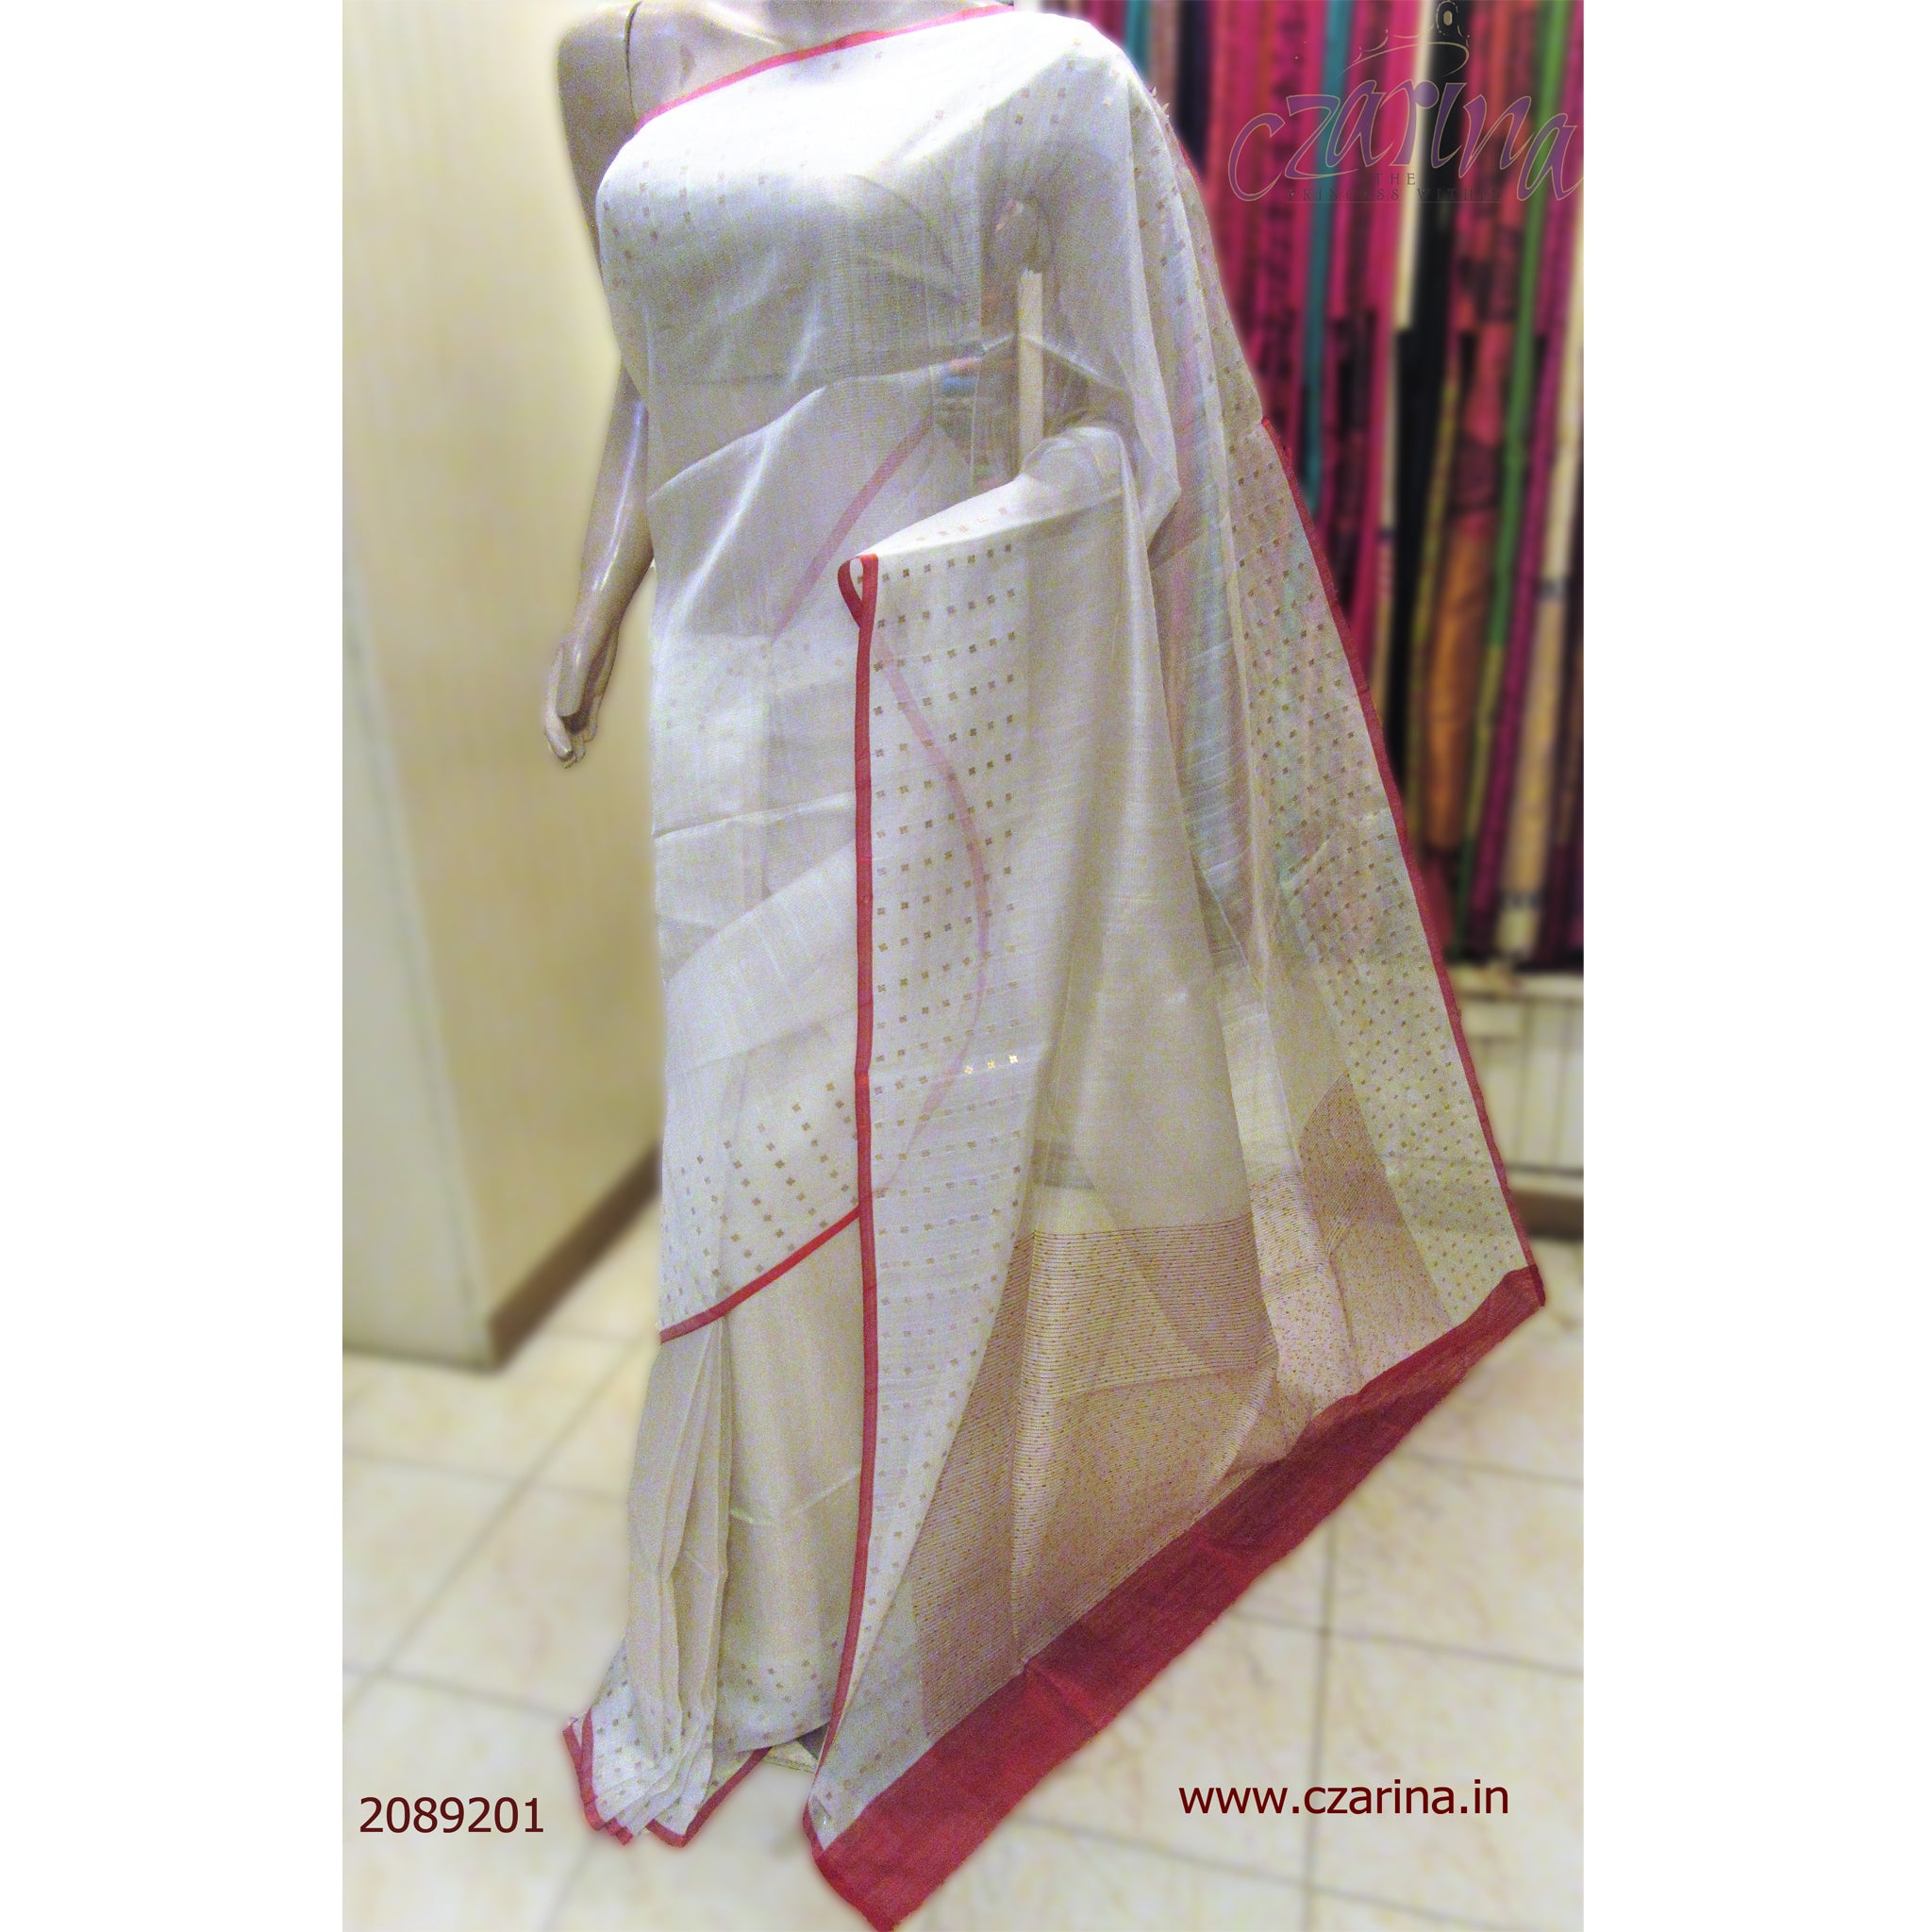 WHITE BAILOU SILK SAREE WITH ELEGANT RED BORDER SAREE